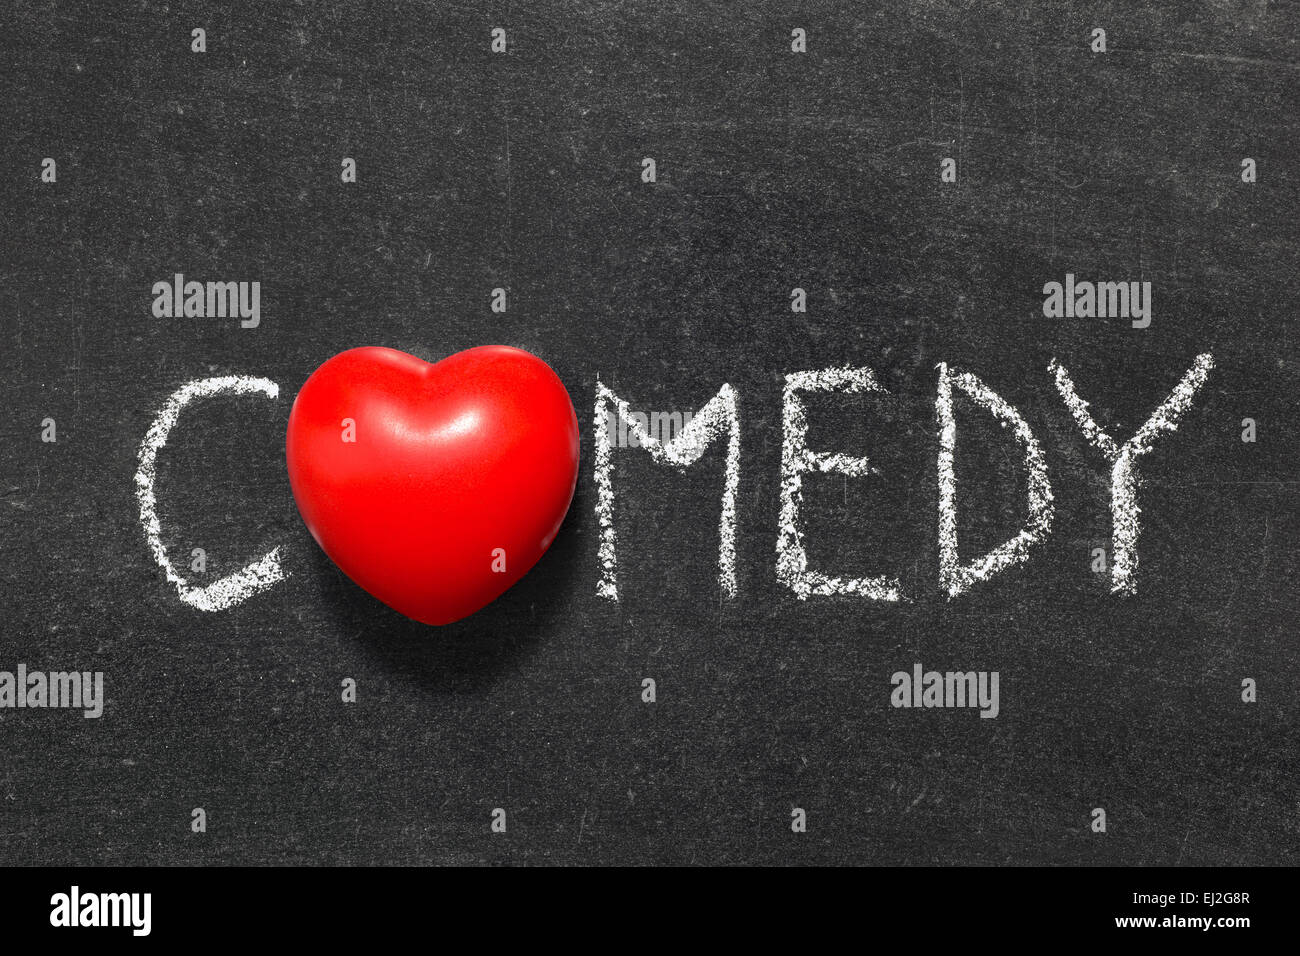 comedy word handwritten on blackboard with heart symbol instead of O - Stock Image